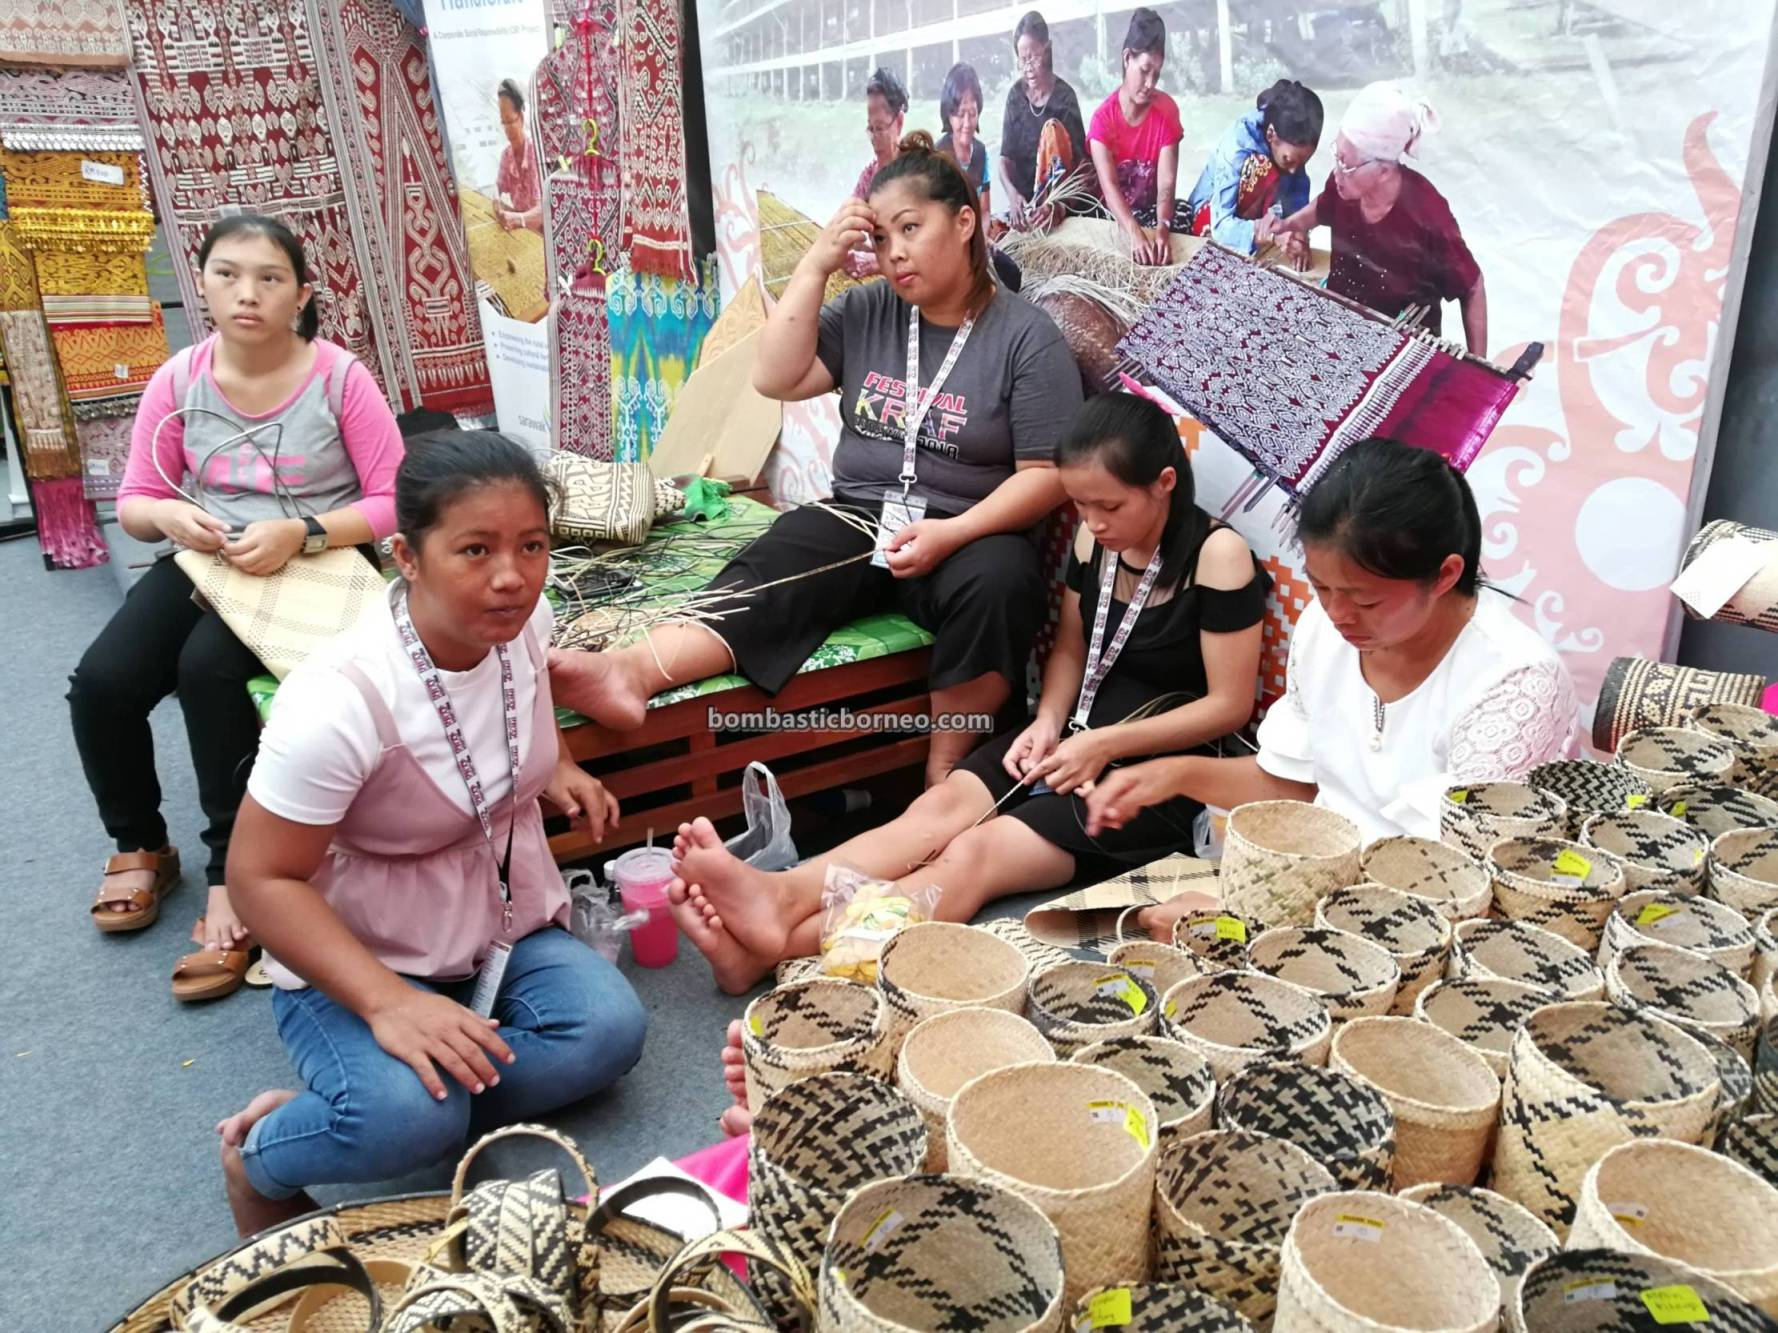 handicrafts exhibition, handmade, Basketry, rotan, native, Orang Ulu, Kraftangan Malaysia, Borneo, Kuching Waterfront, tourist attraction, traditional, travel guide, weaving, 婆罗洲原住民, 藤制手工艺品